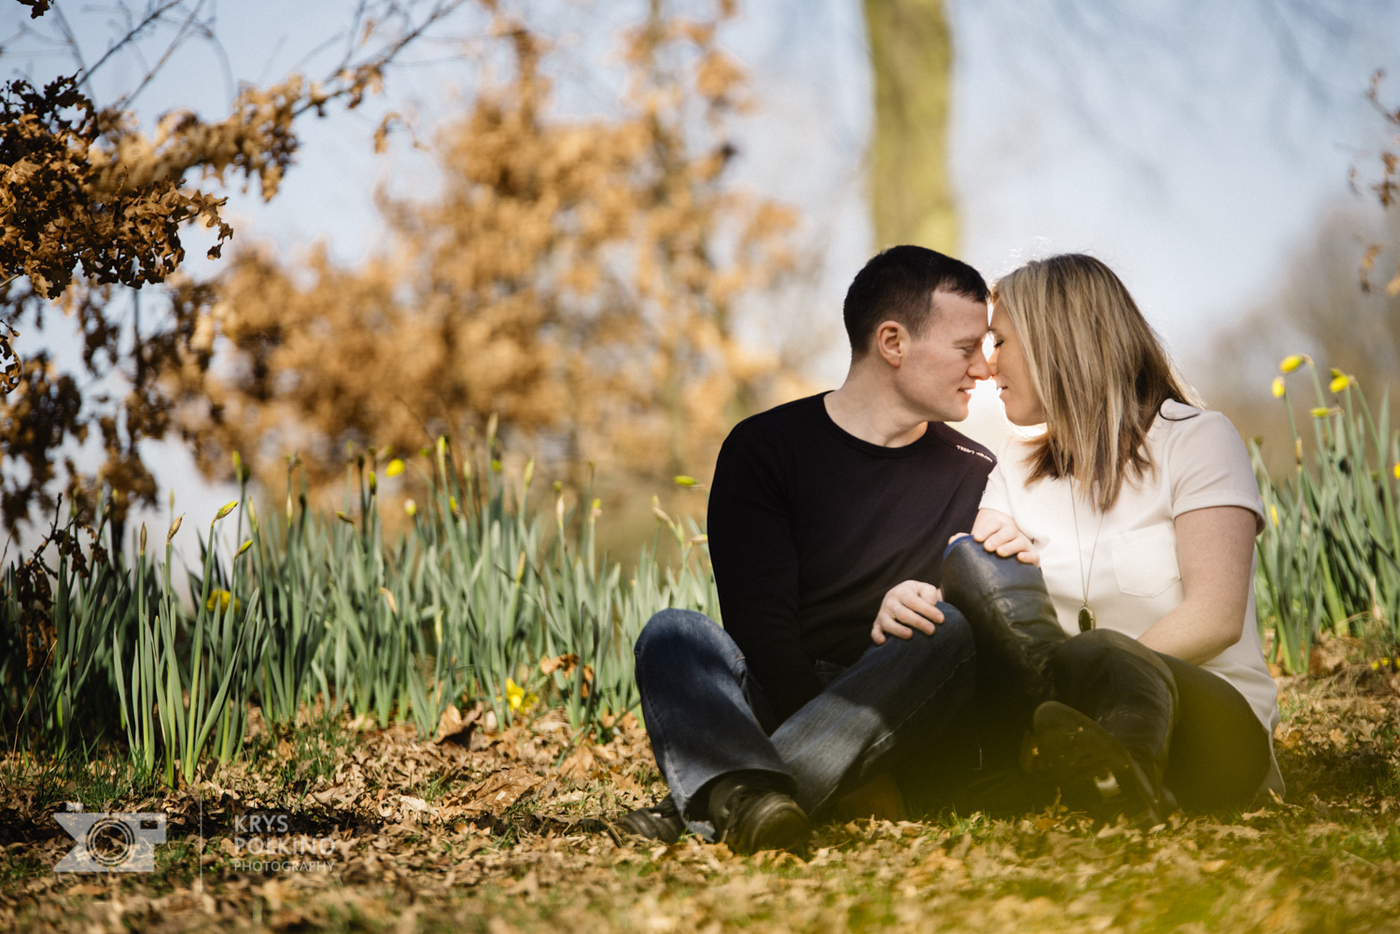 Joanne & Carl engagement session in Sefton Park, Liverpool.